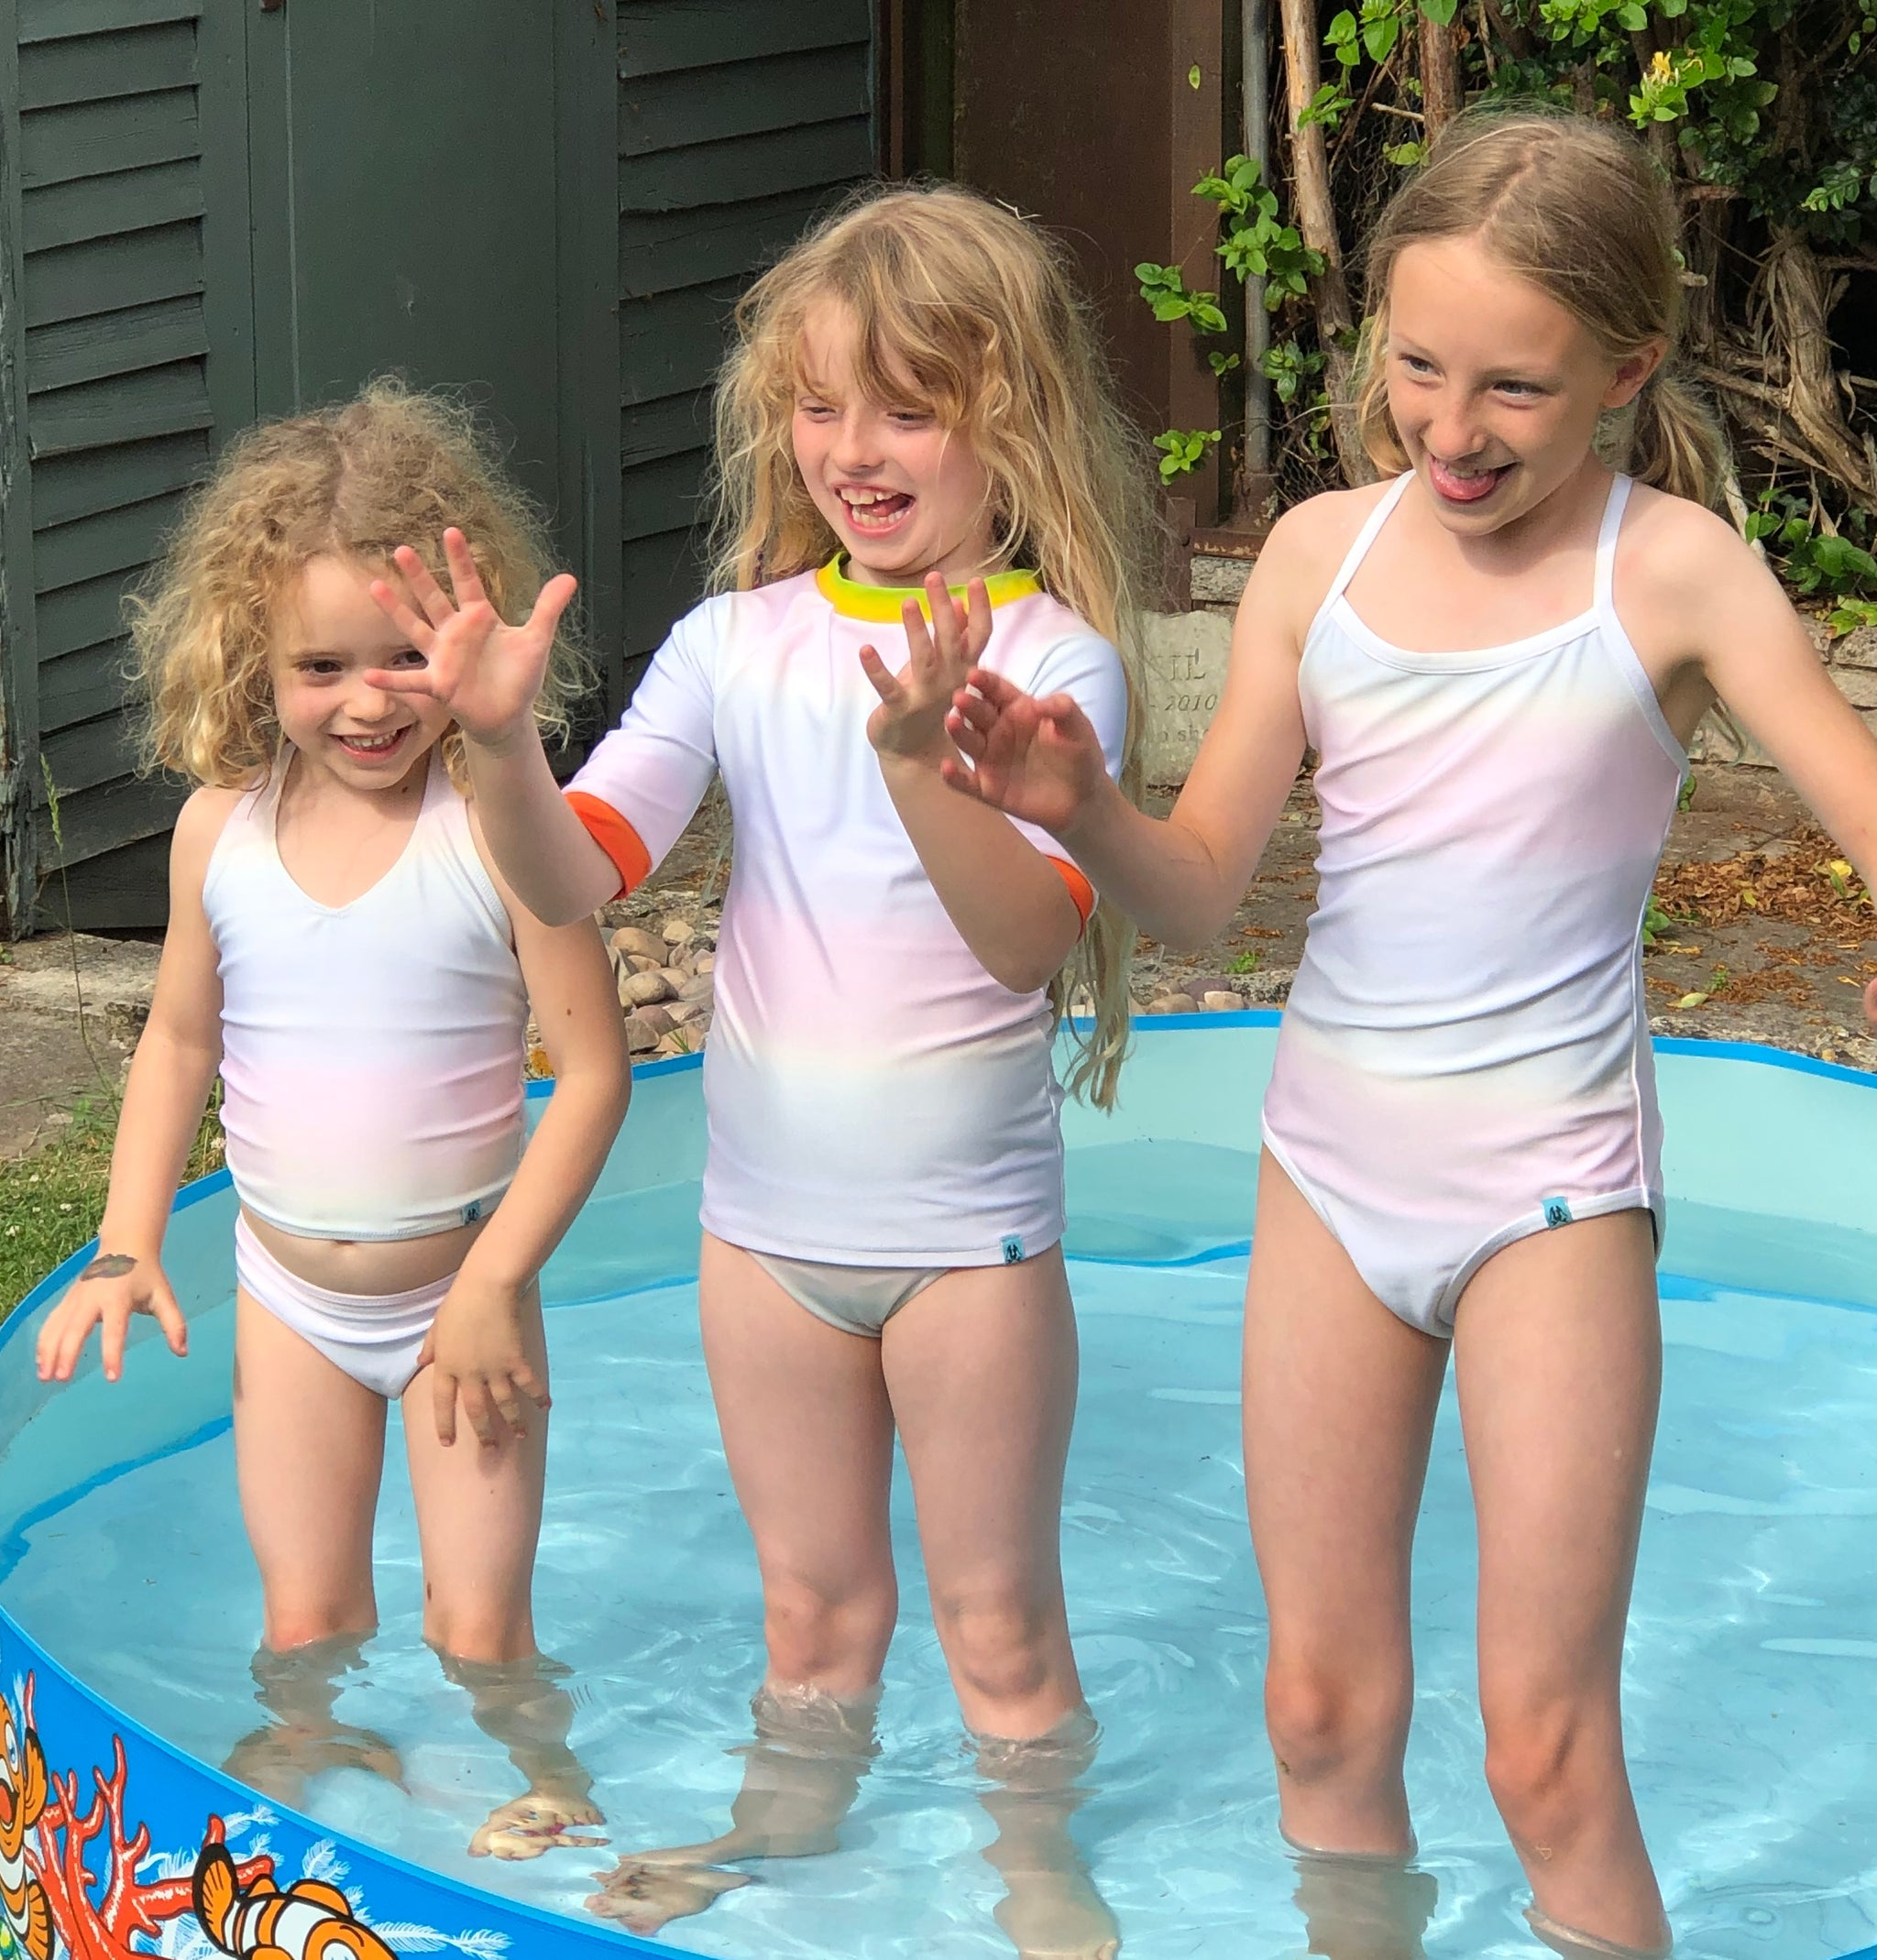 Three girls in a paddling pool all wearing different kinds of swimming costumes. One girl is wearing a tankini and brief, one girls in wearing a rash vest and brief and one girl is wearing a one piece swimming costume